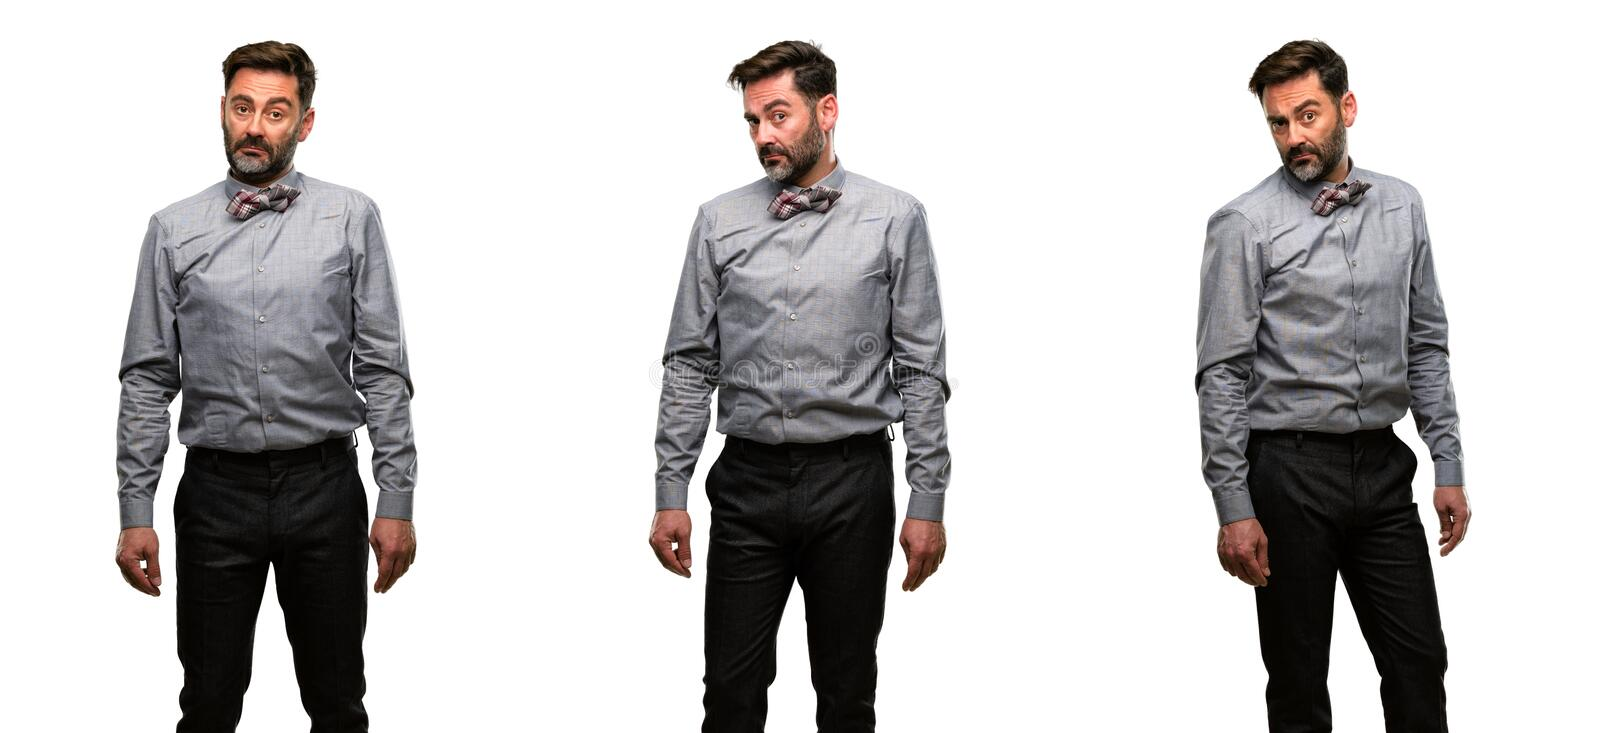 Middle age man wearing a suit royalty free stock images